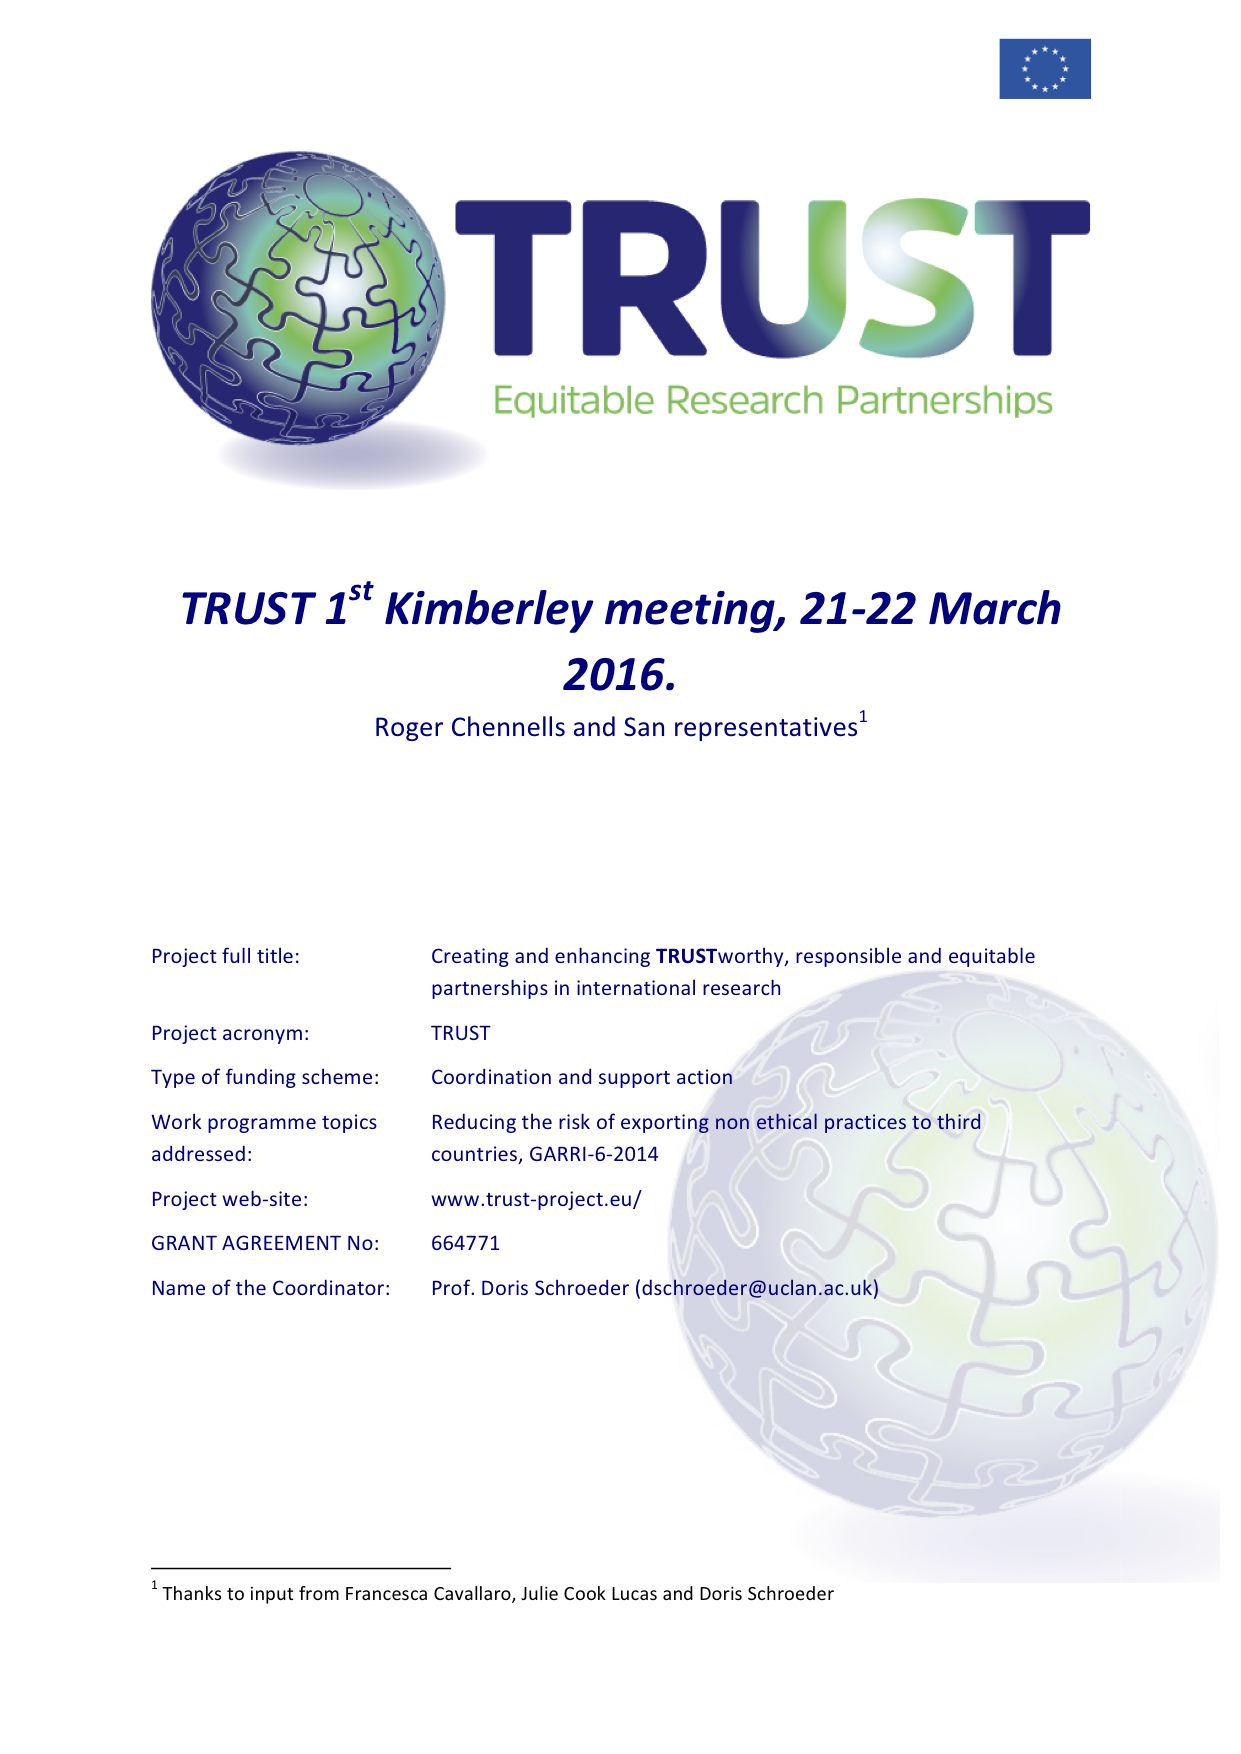 TRUST_Kimberley meeting_March21-22-2016_Final